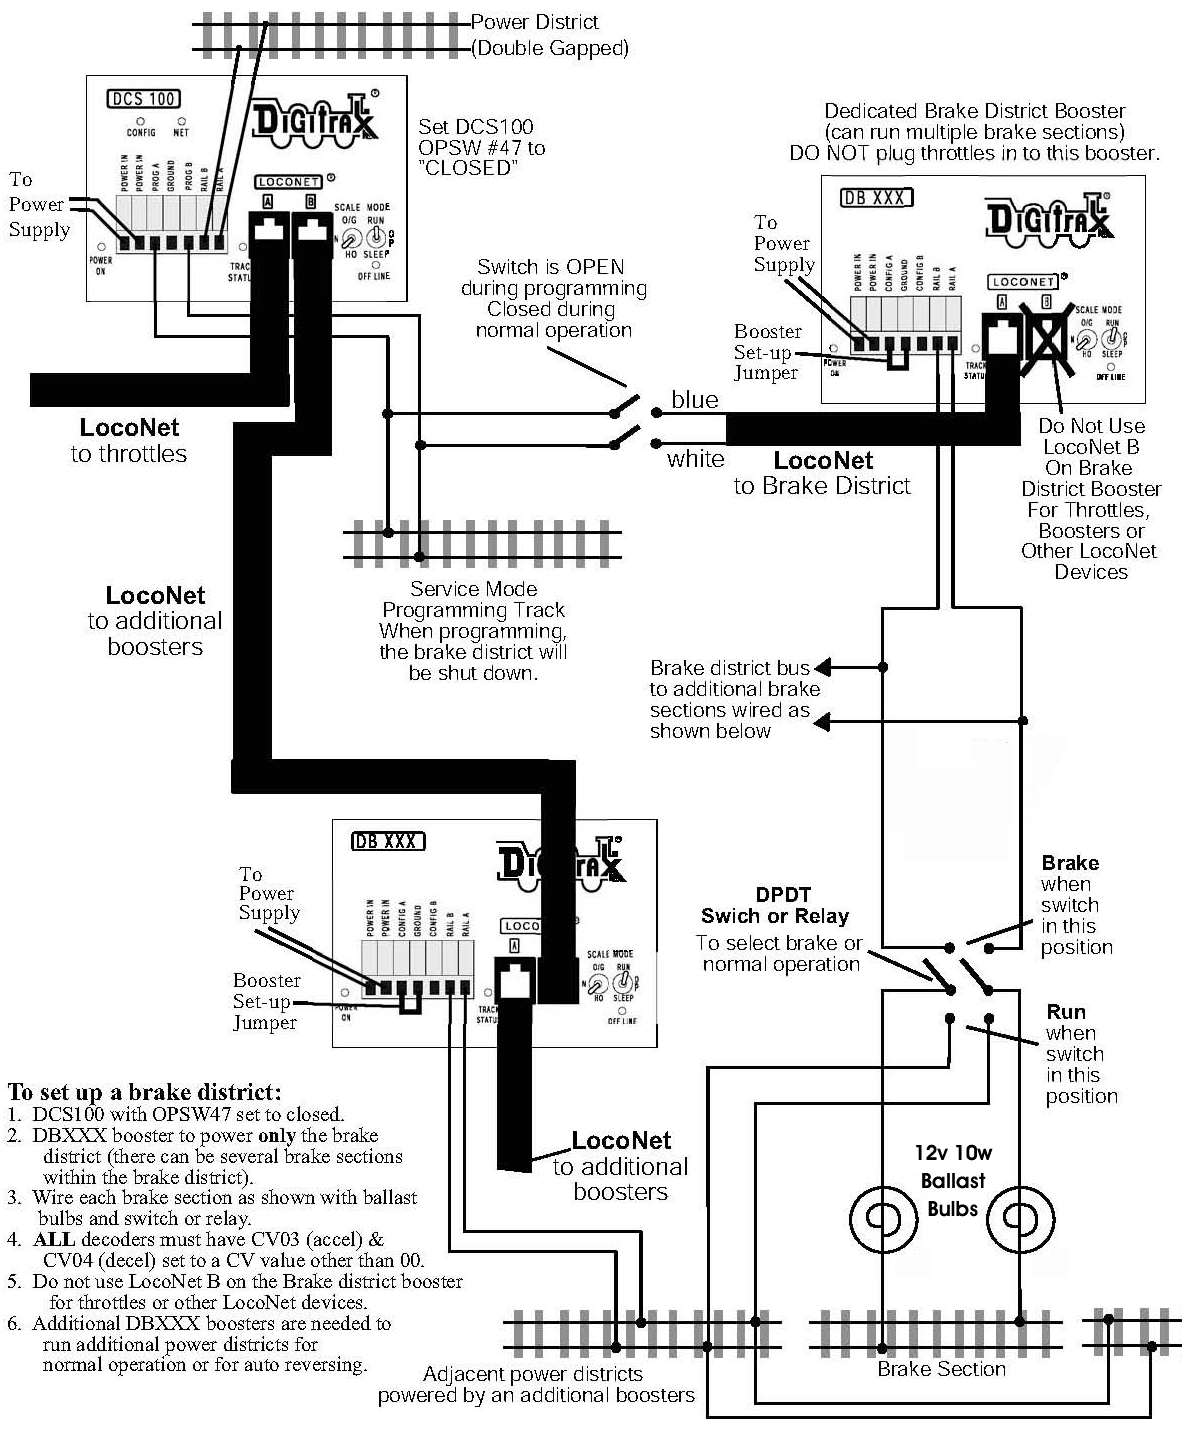 empire builder digitrax wiring diagram proto 2000 wiring